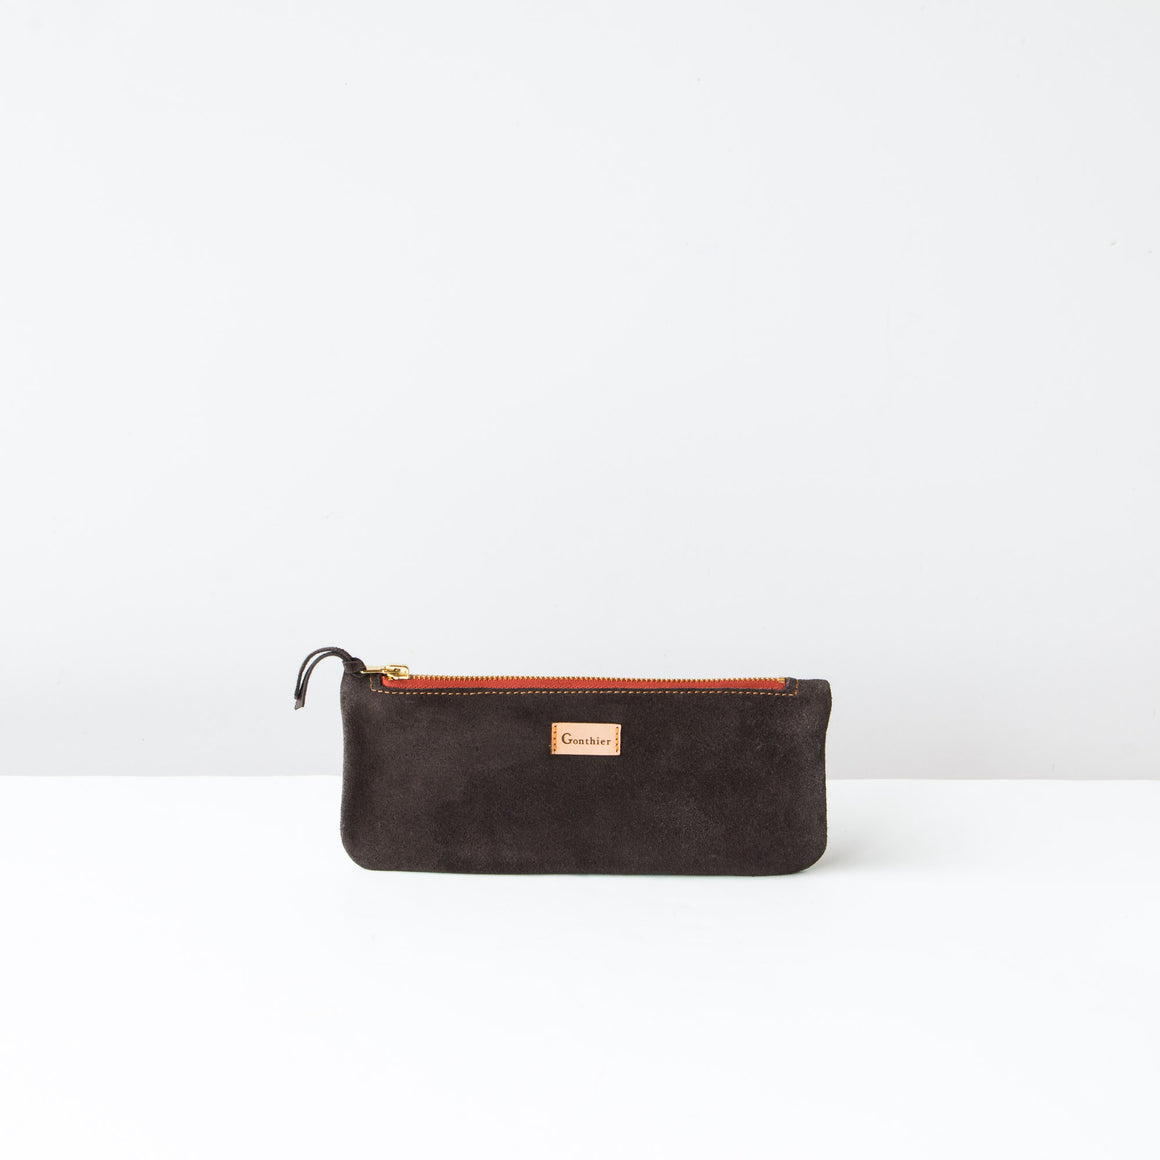 Bordeaux & Khaki - Handmade Long Pouch in Suede Calfskin - Sold by Chic & Basta